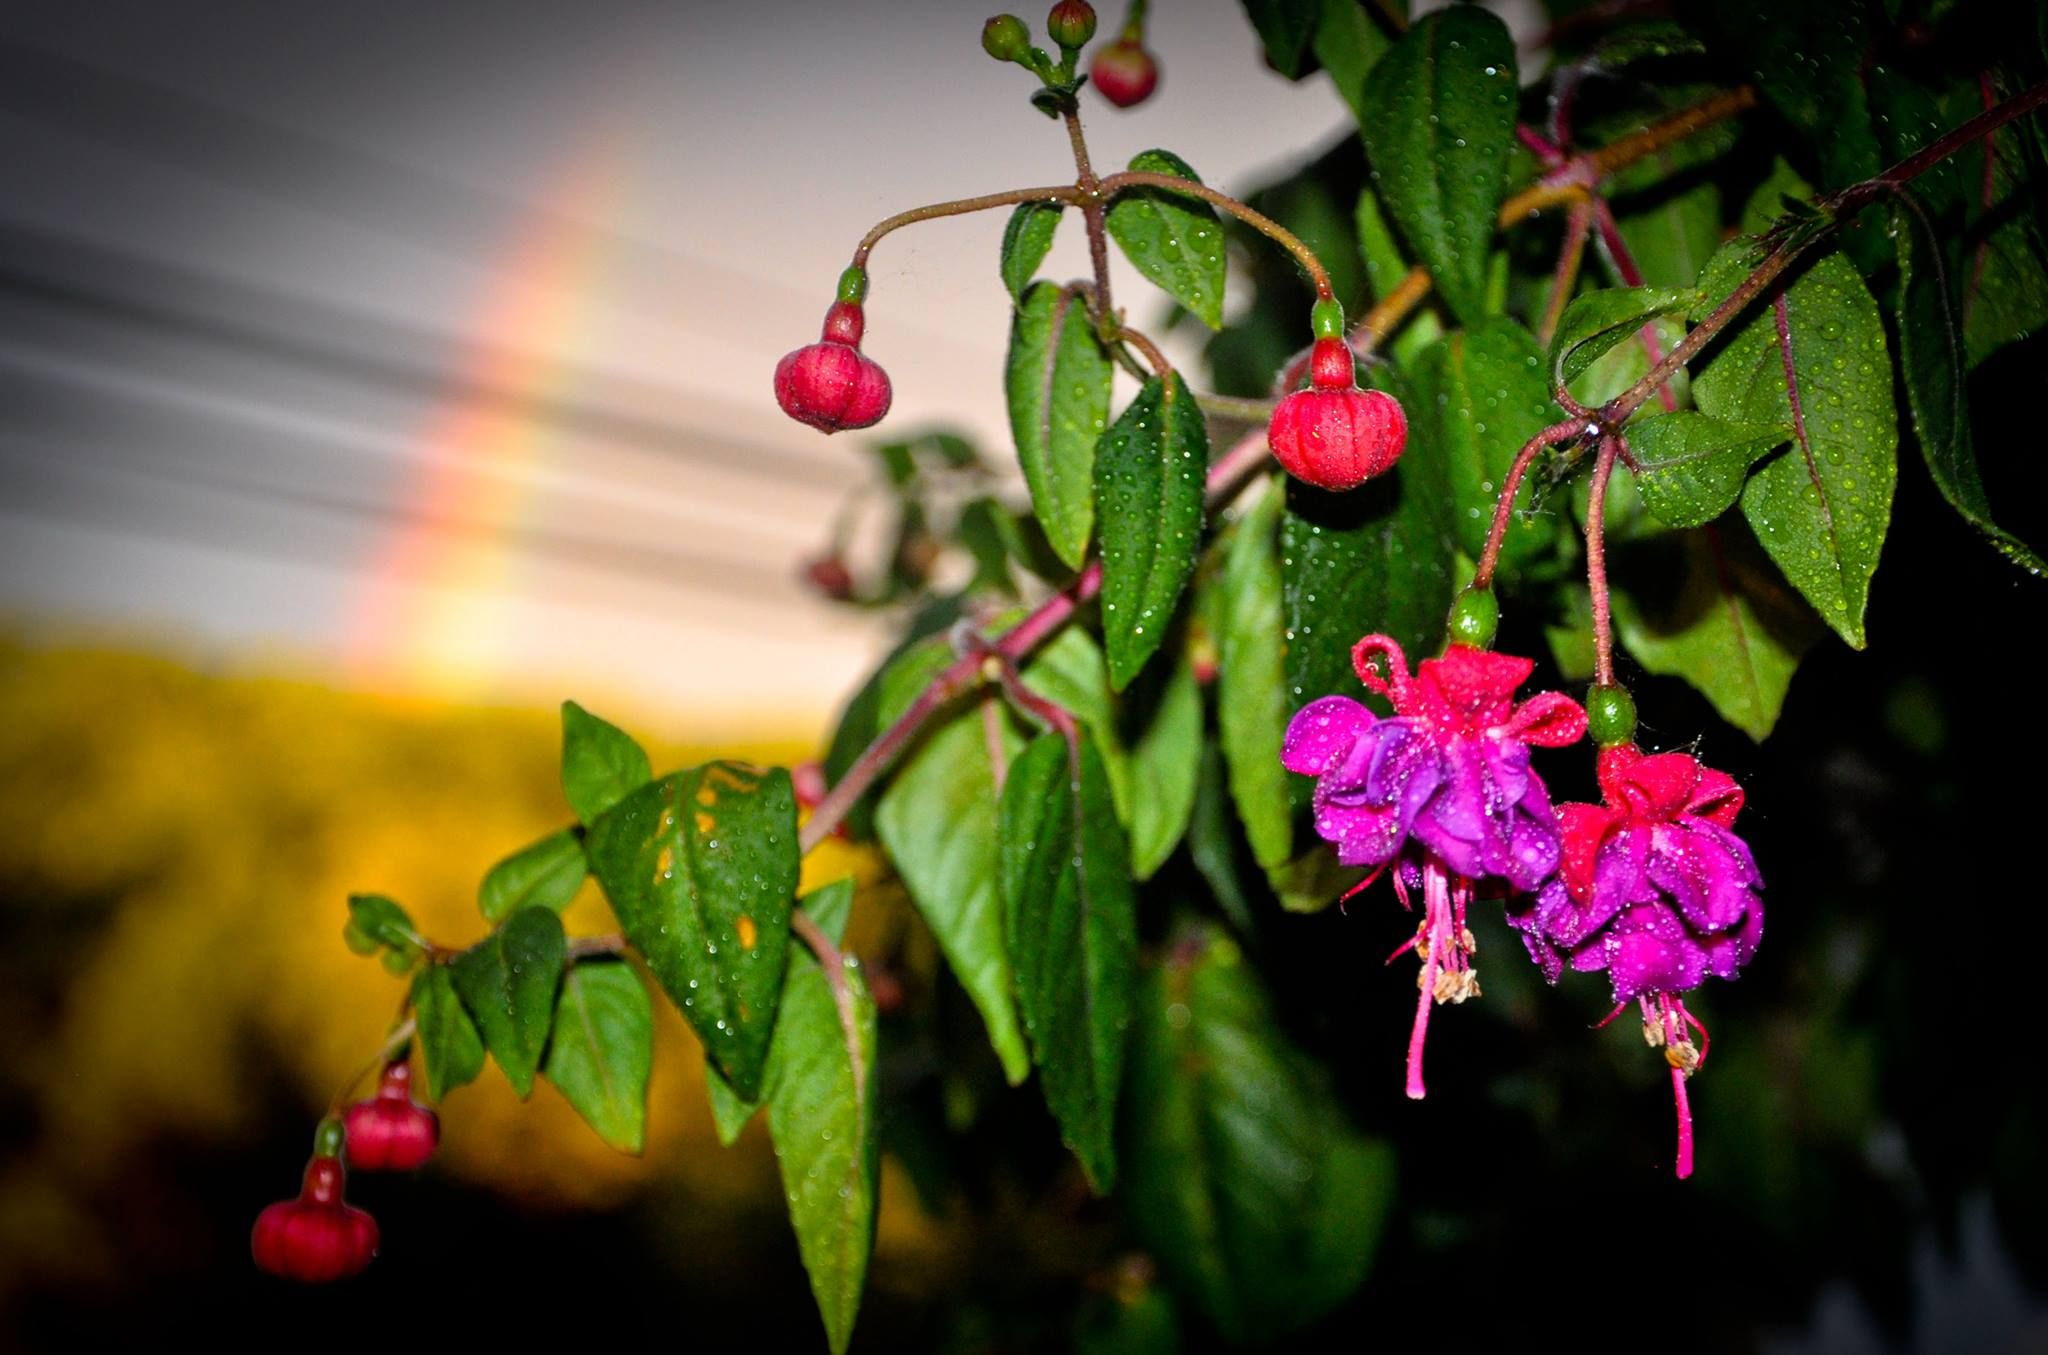 Here's a photo of my hanging fuchsia plant, with rainbow in the background.